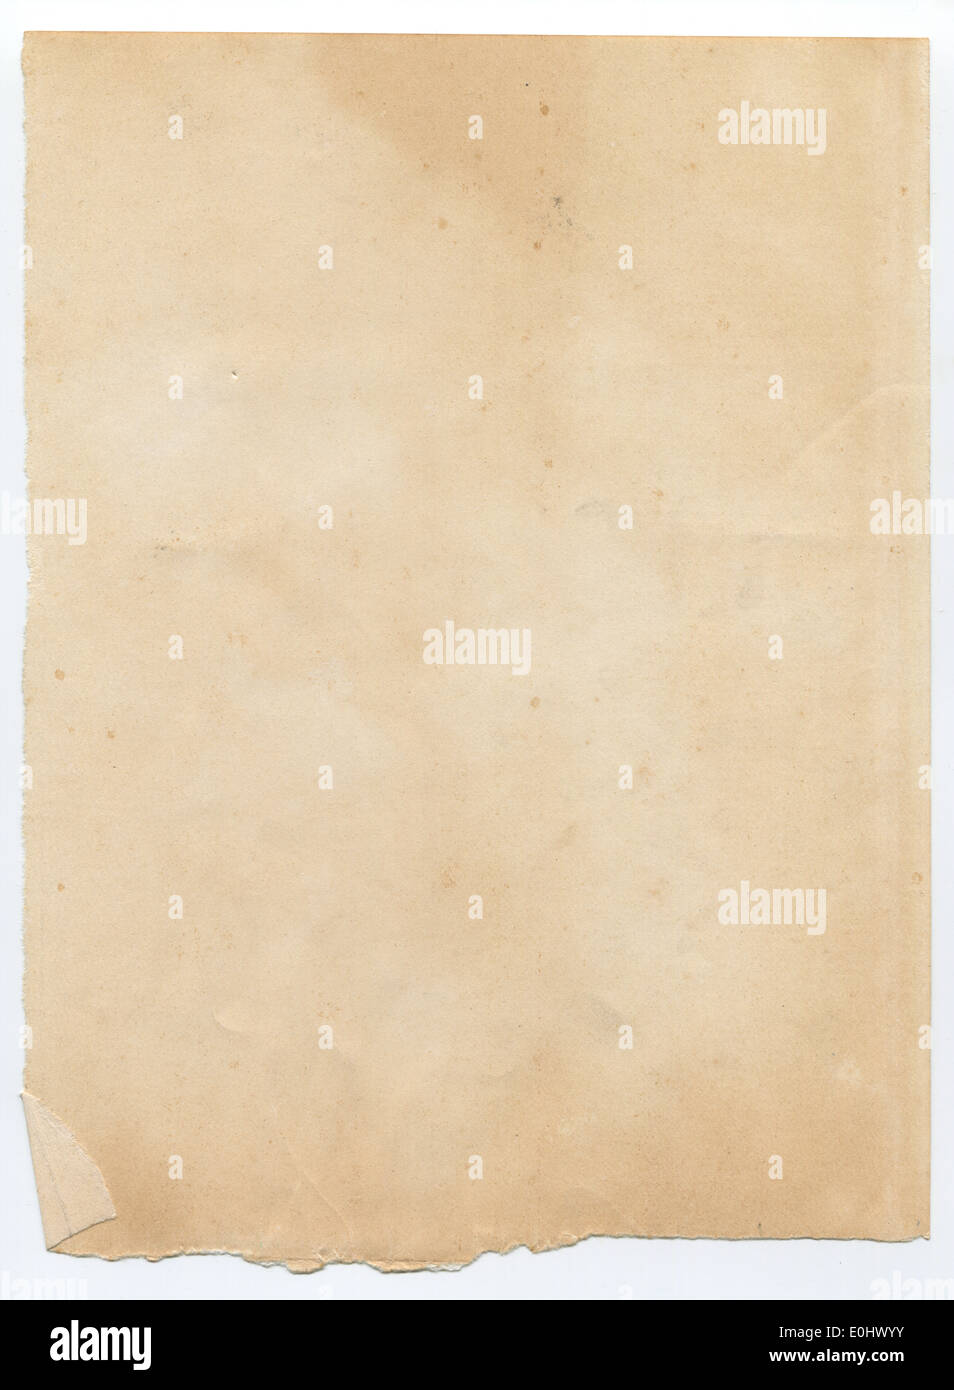 Torn old paper texture - Stock Image